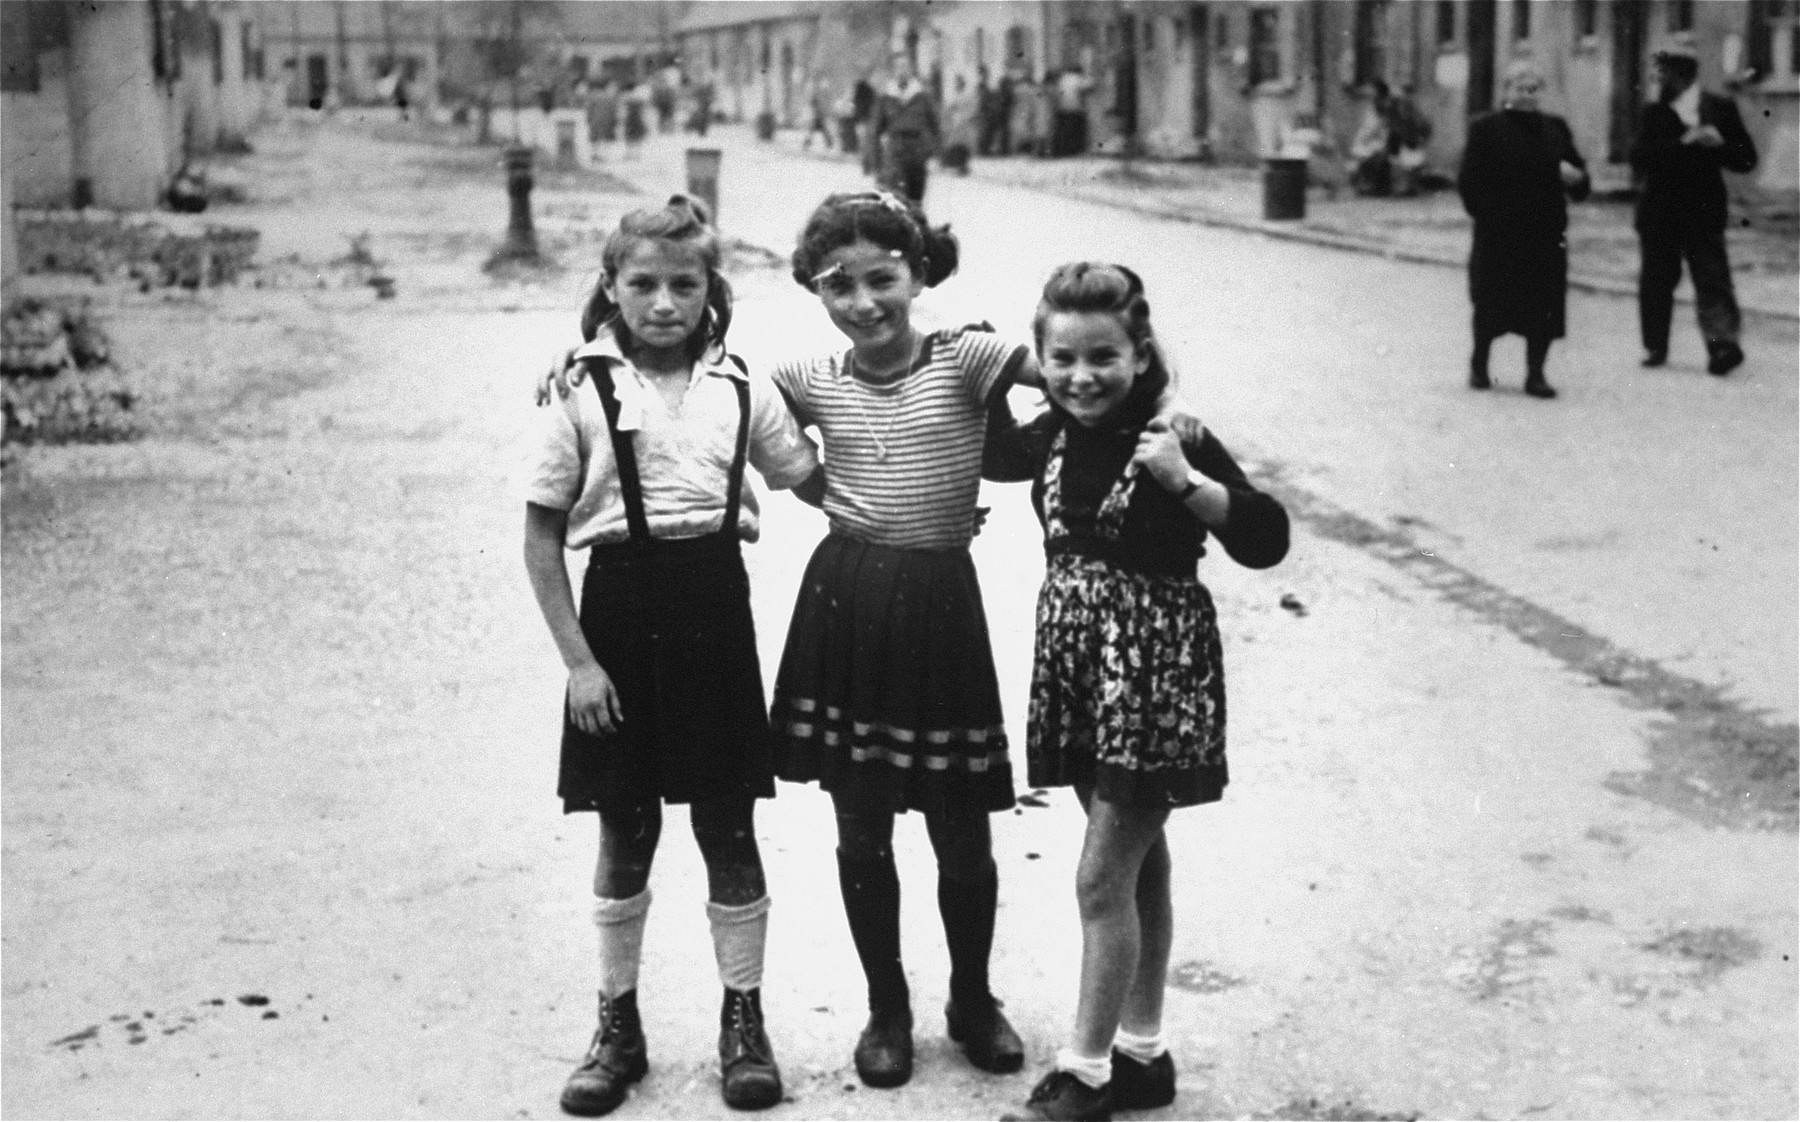 Three young girls pose together on a street of the  Foehrenwald displaced persons camp.    Pictured from left to right are Pesa Balter, Chaia Libstug and Pela Roset.